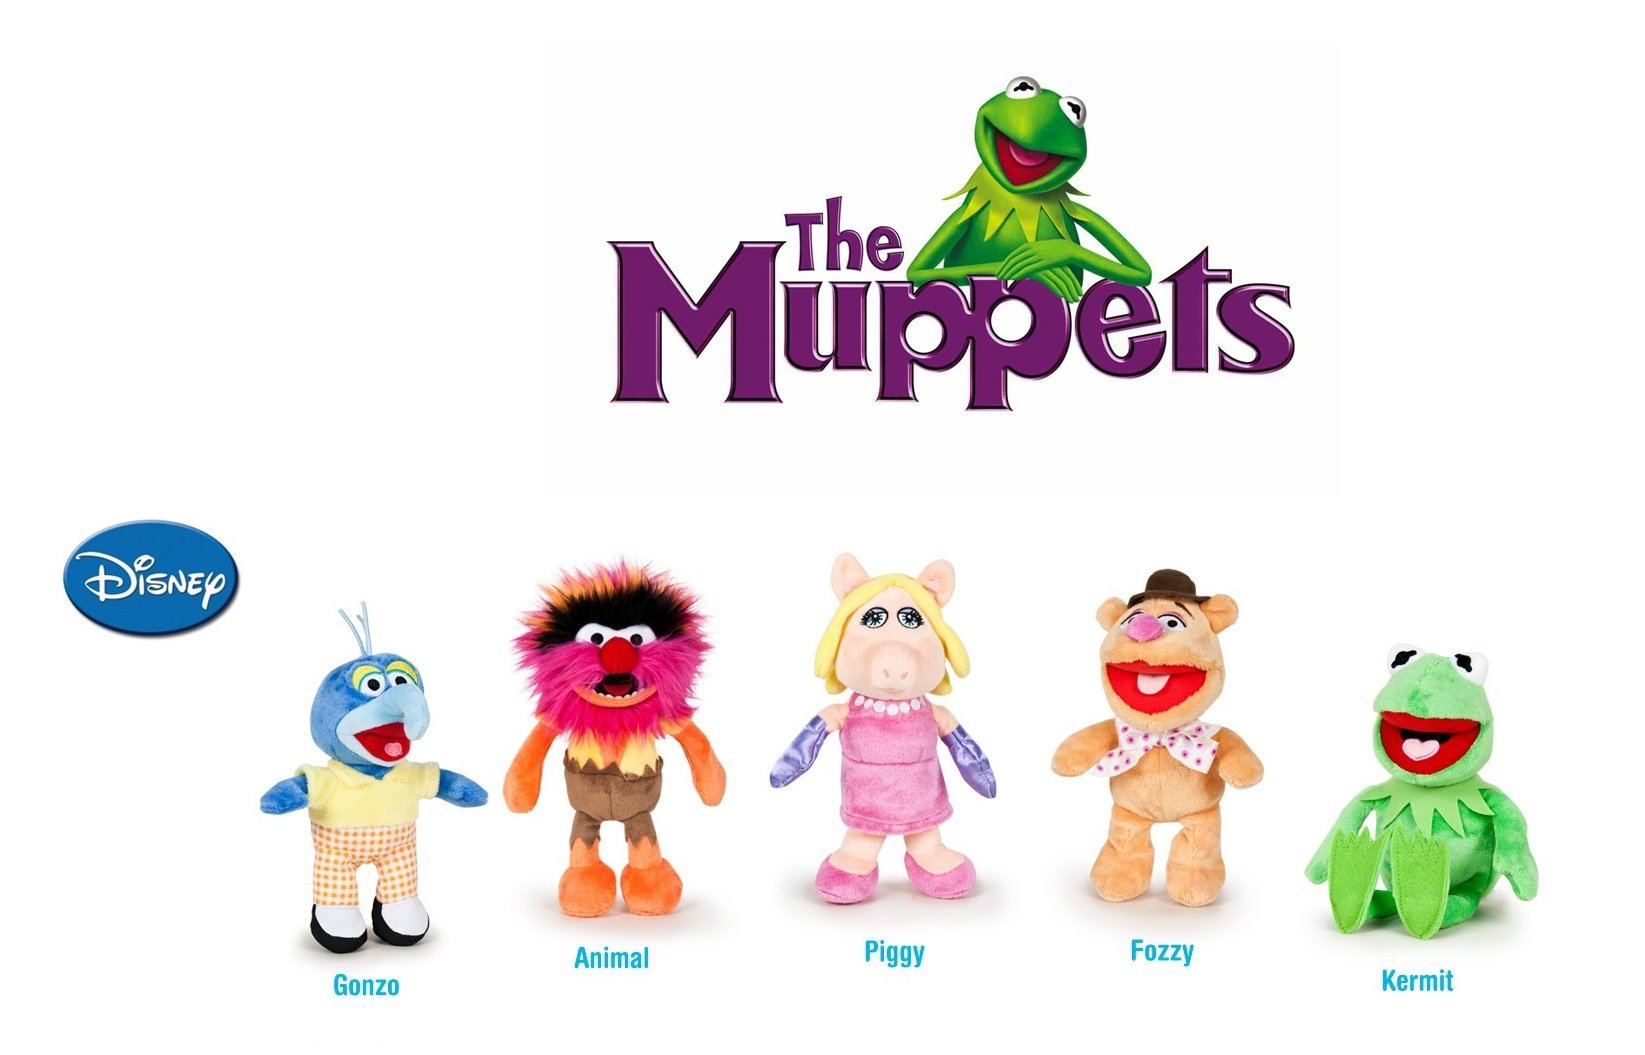 The Muppets - Pack 5 plush toy Quality super soft - Kermit the frog 22cm + Miss Piggy 20cm + Gonzo 19cm + Fozzie the bear 21cm + Animal 20cm by The Muppets